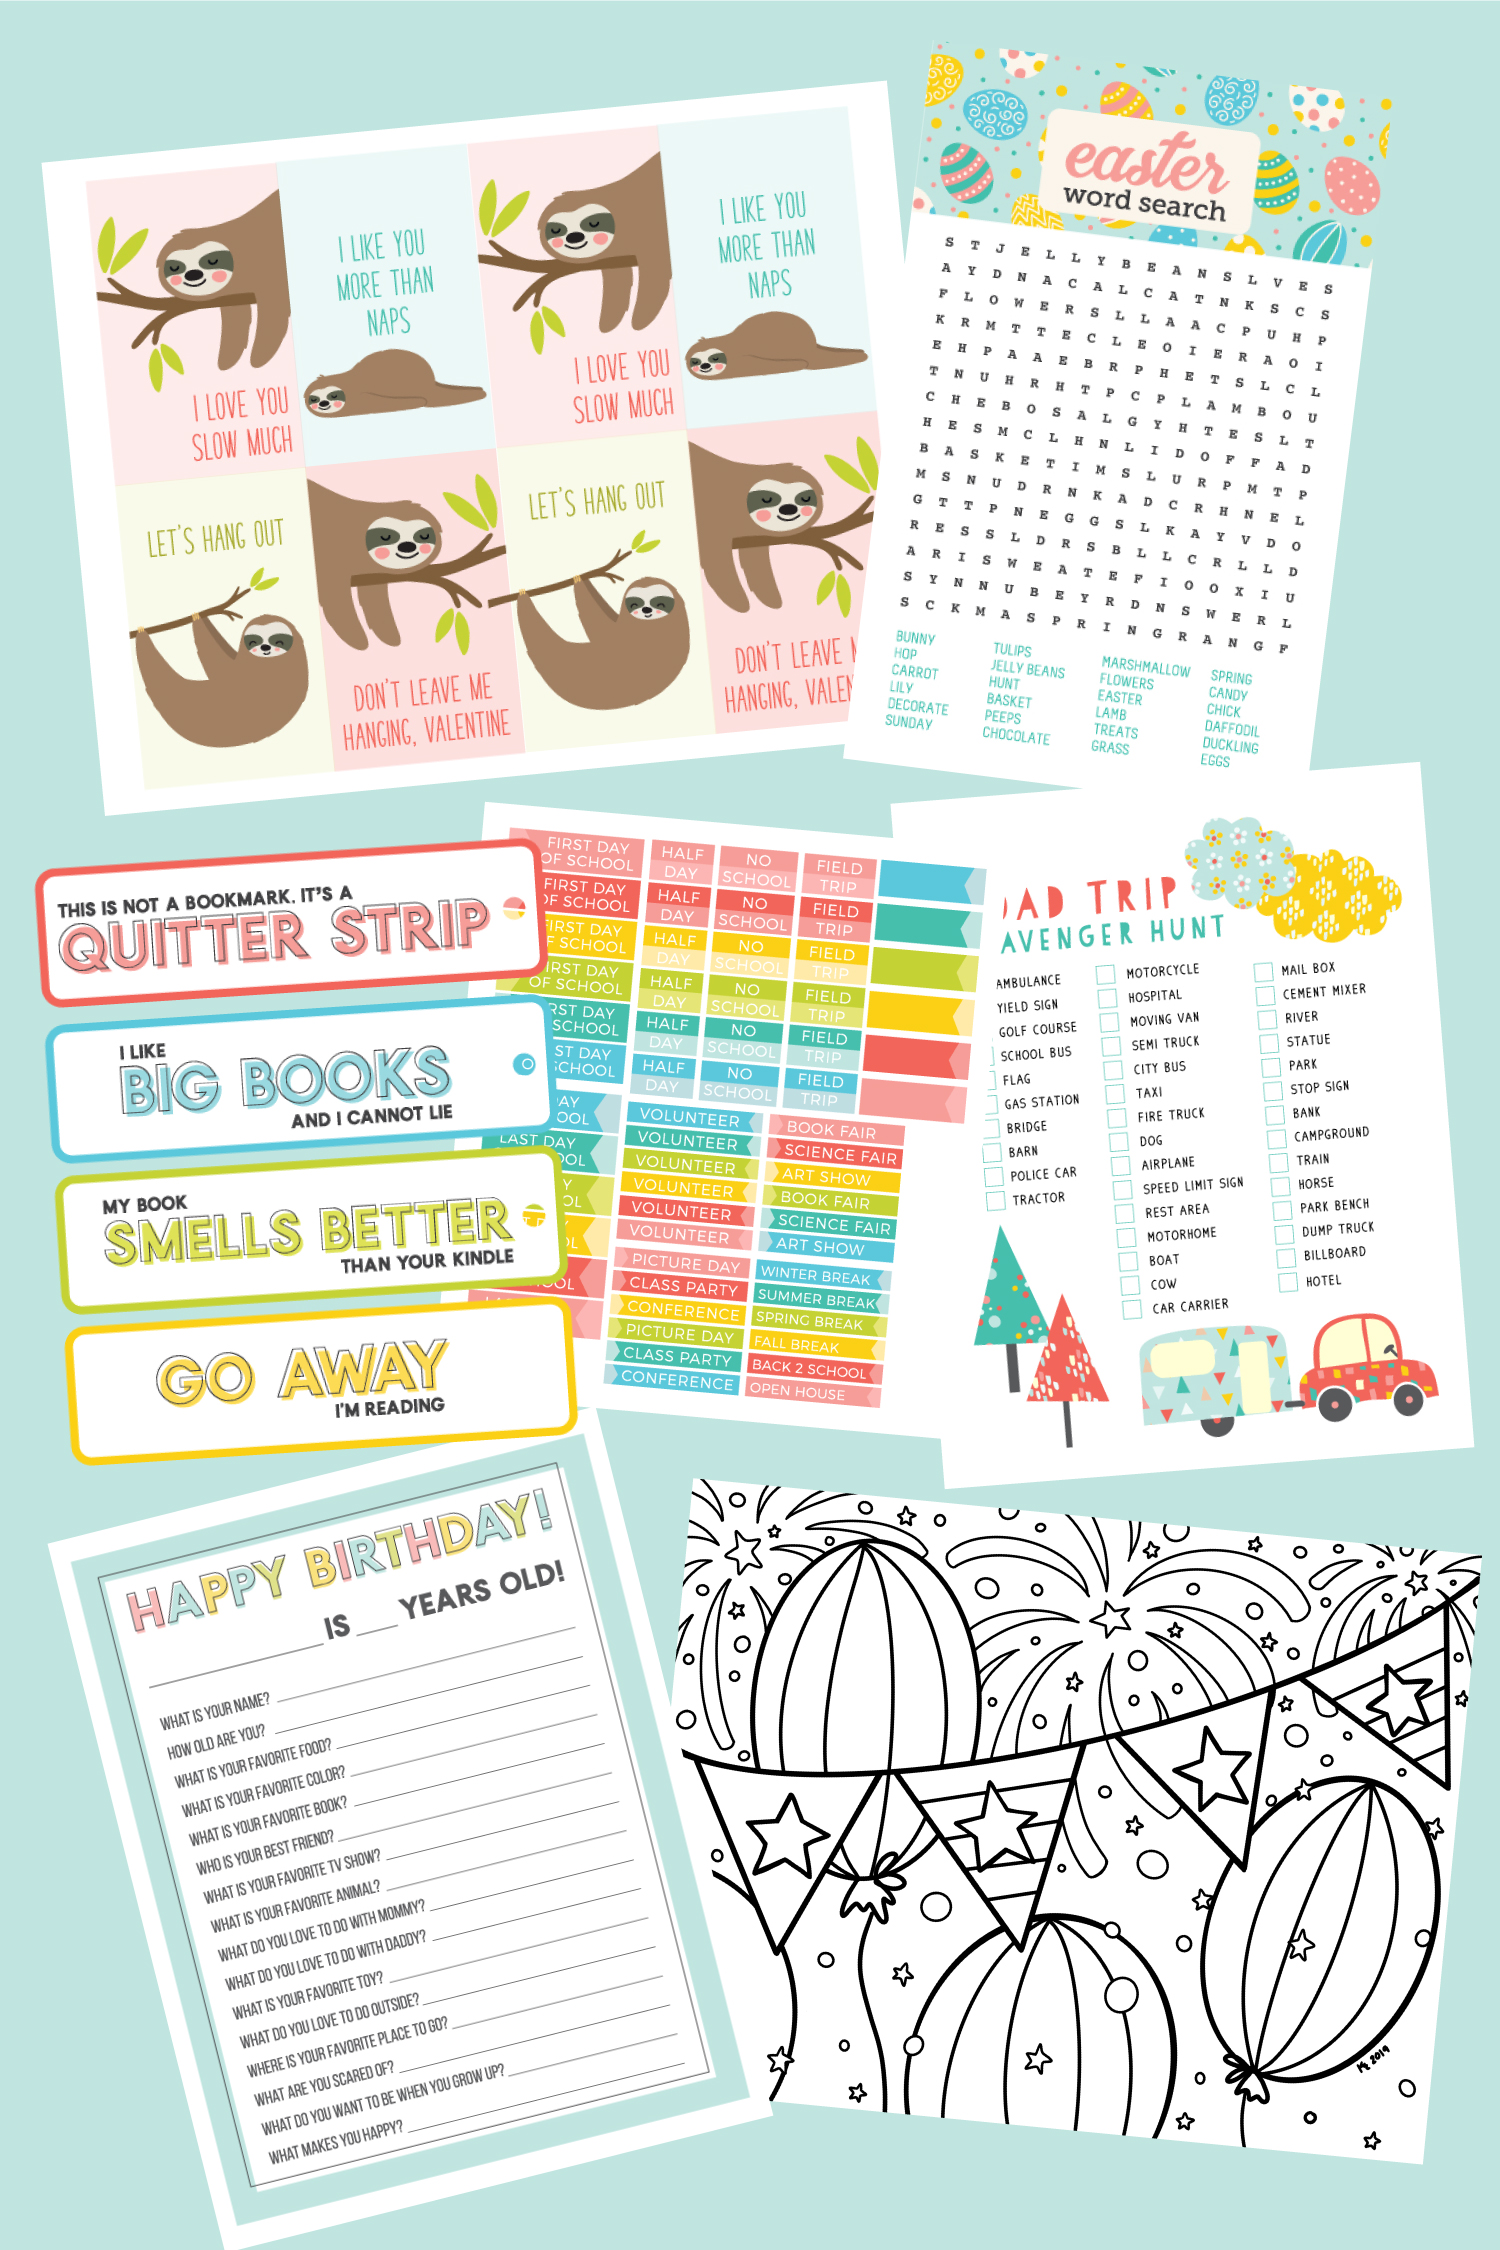 Have you ever wanted to design your own own printables—but find yourself not knowing where to start when it comes to programs, fonts, colors, and more? Check out our ultimate guide to designing printables for help!